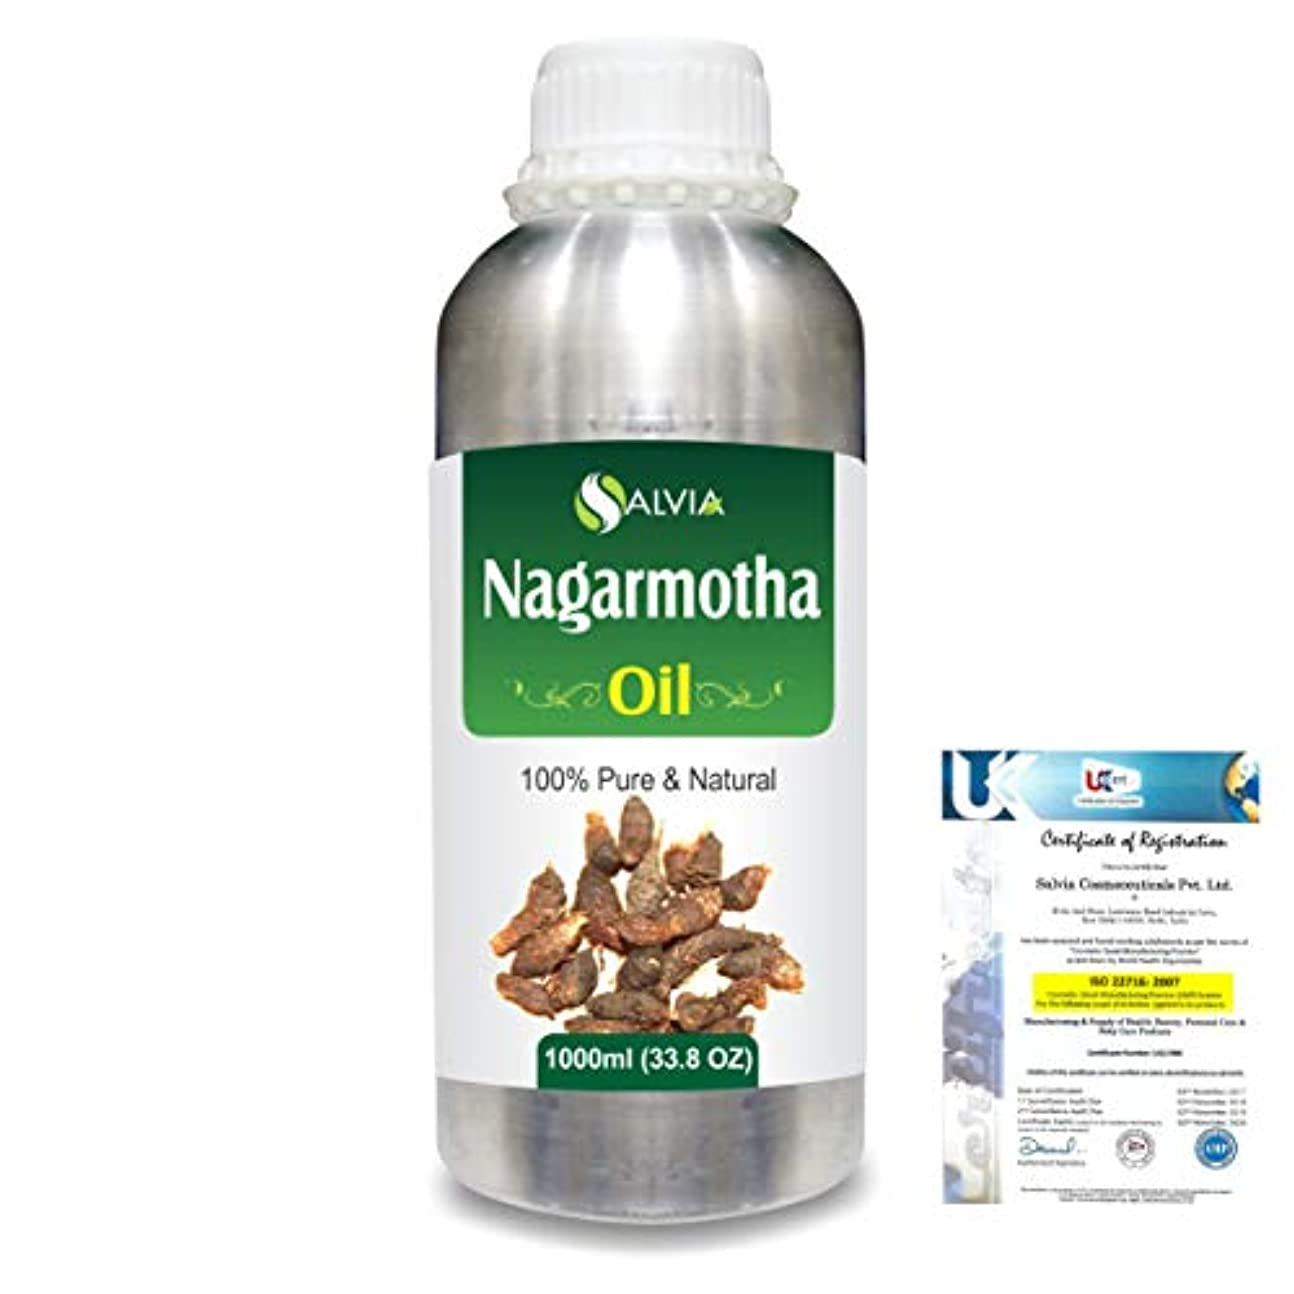 ポール抜本的な人質Nagarmotha (Cyprus scariosus) 100% Natural Pure Essential Oil 1000ml/33.8fl.oz.